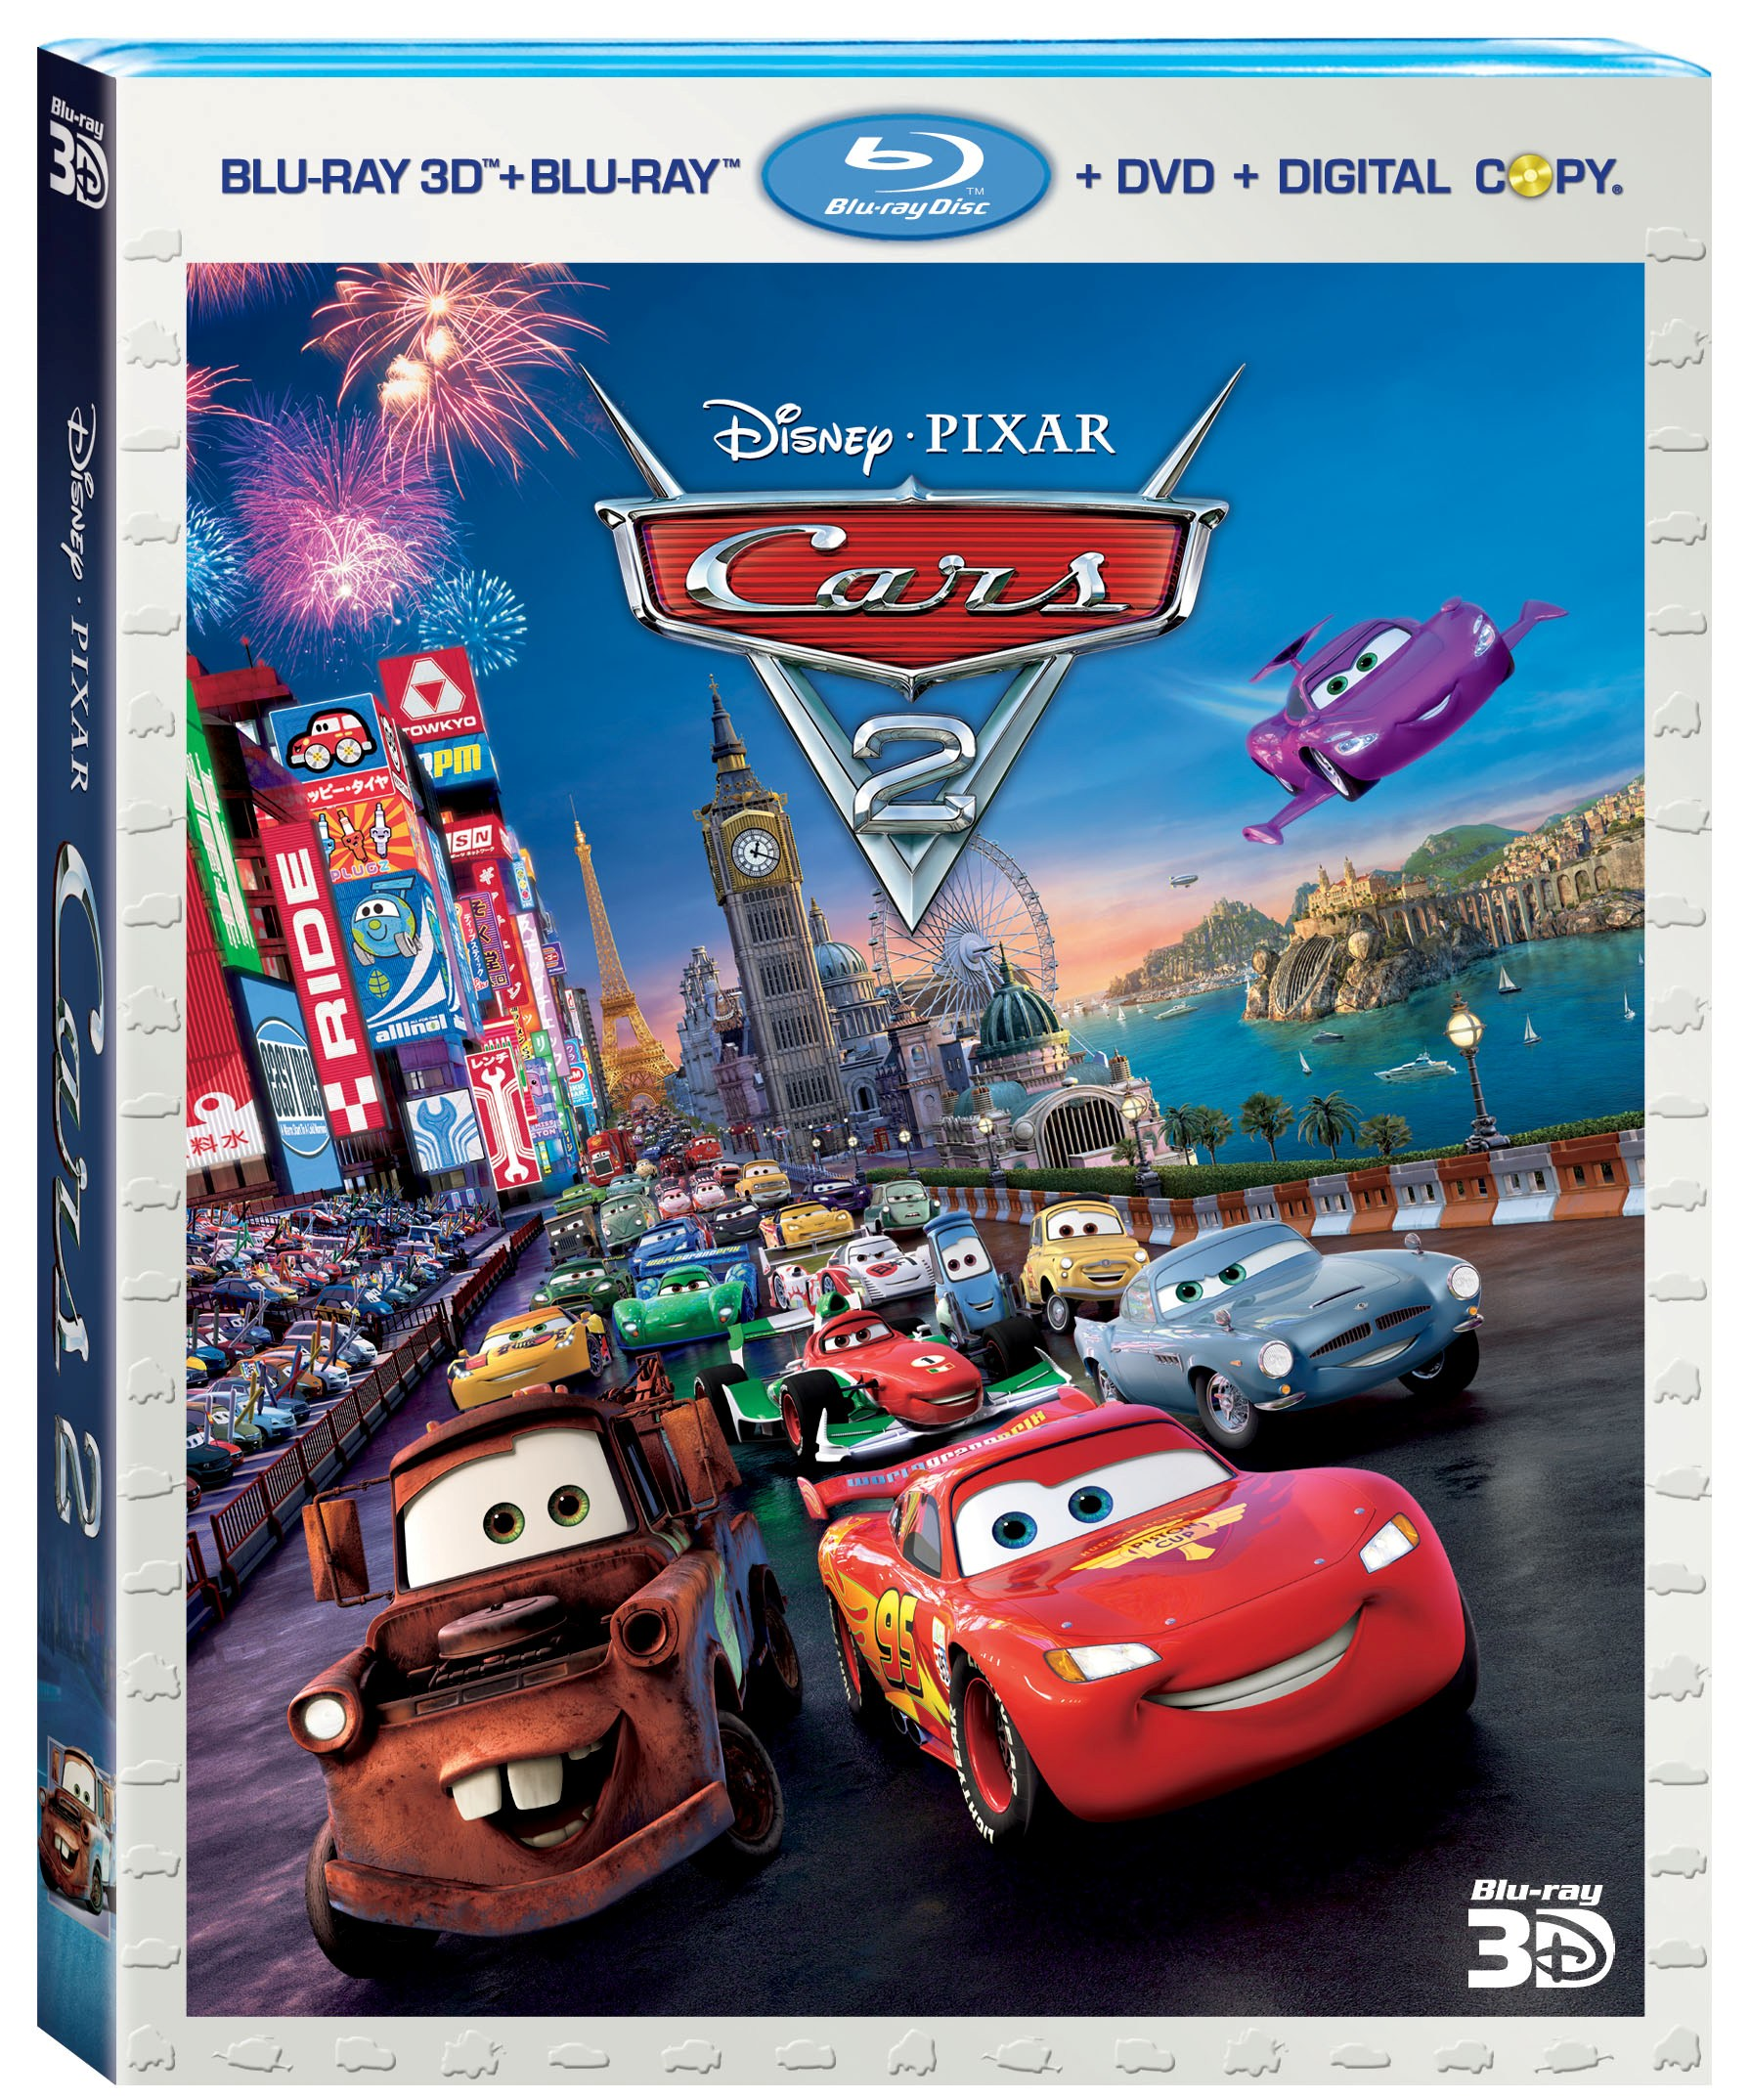 Video Previews: 'Cars 2' Blu-ray/DVD Special Features